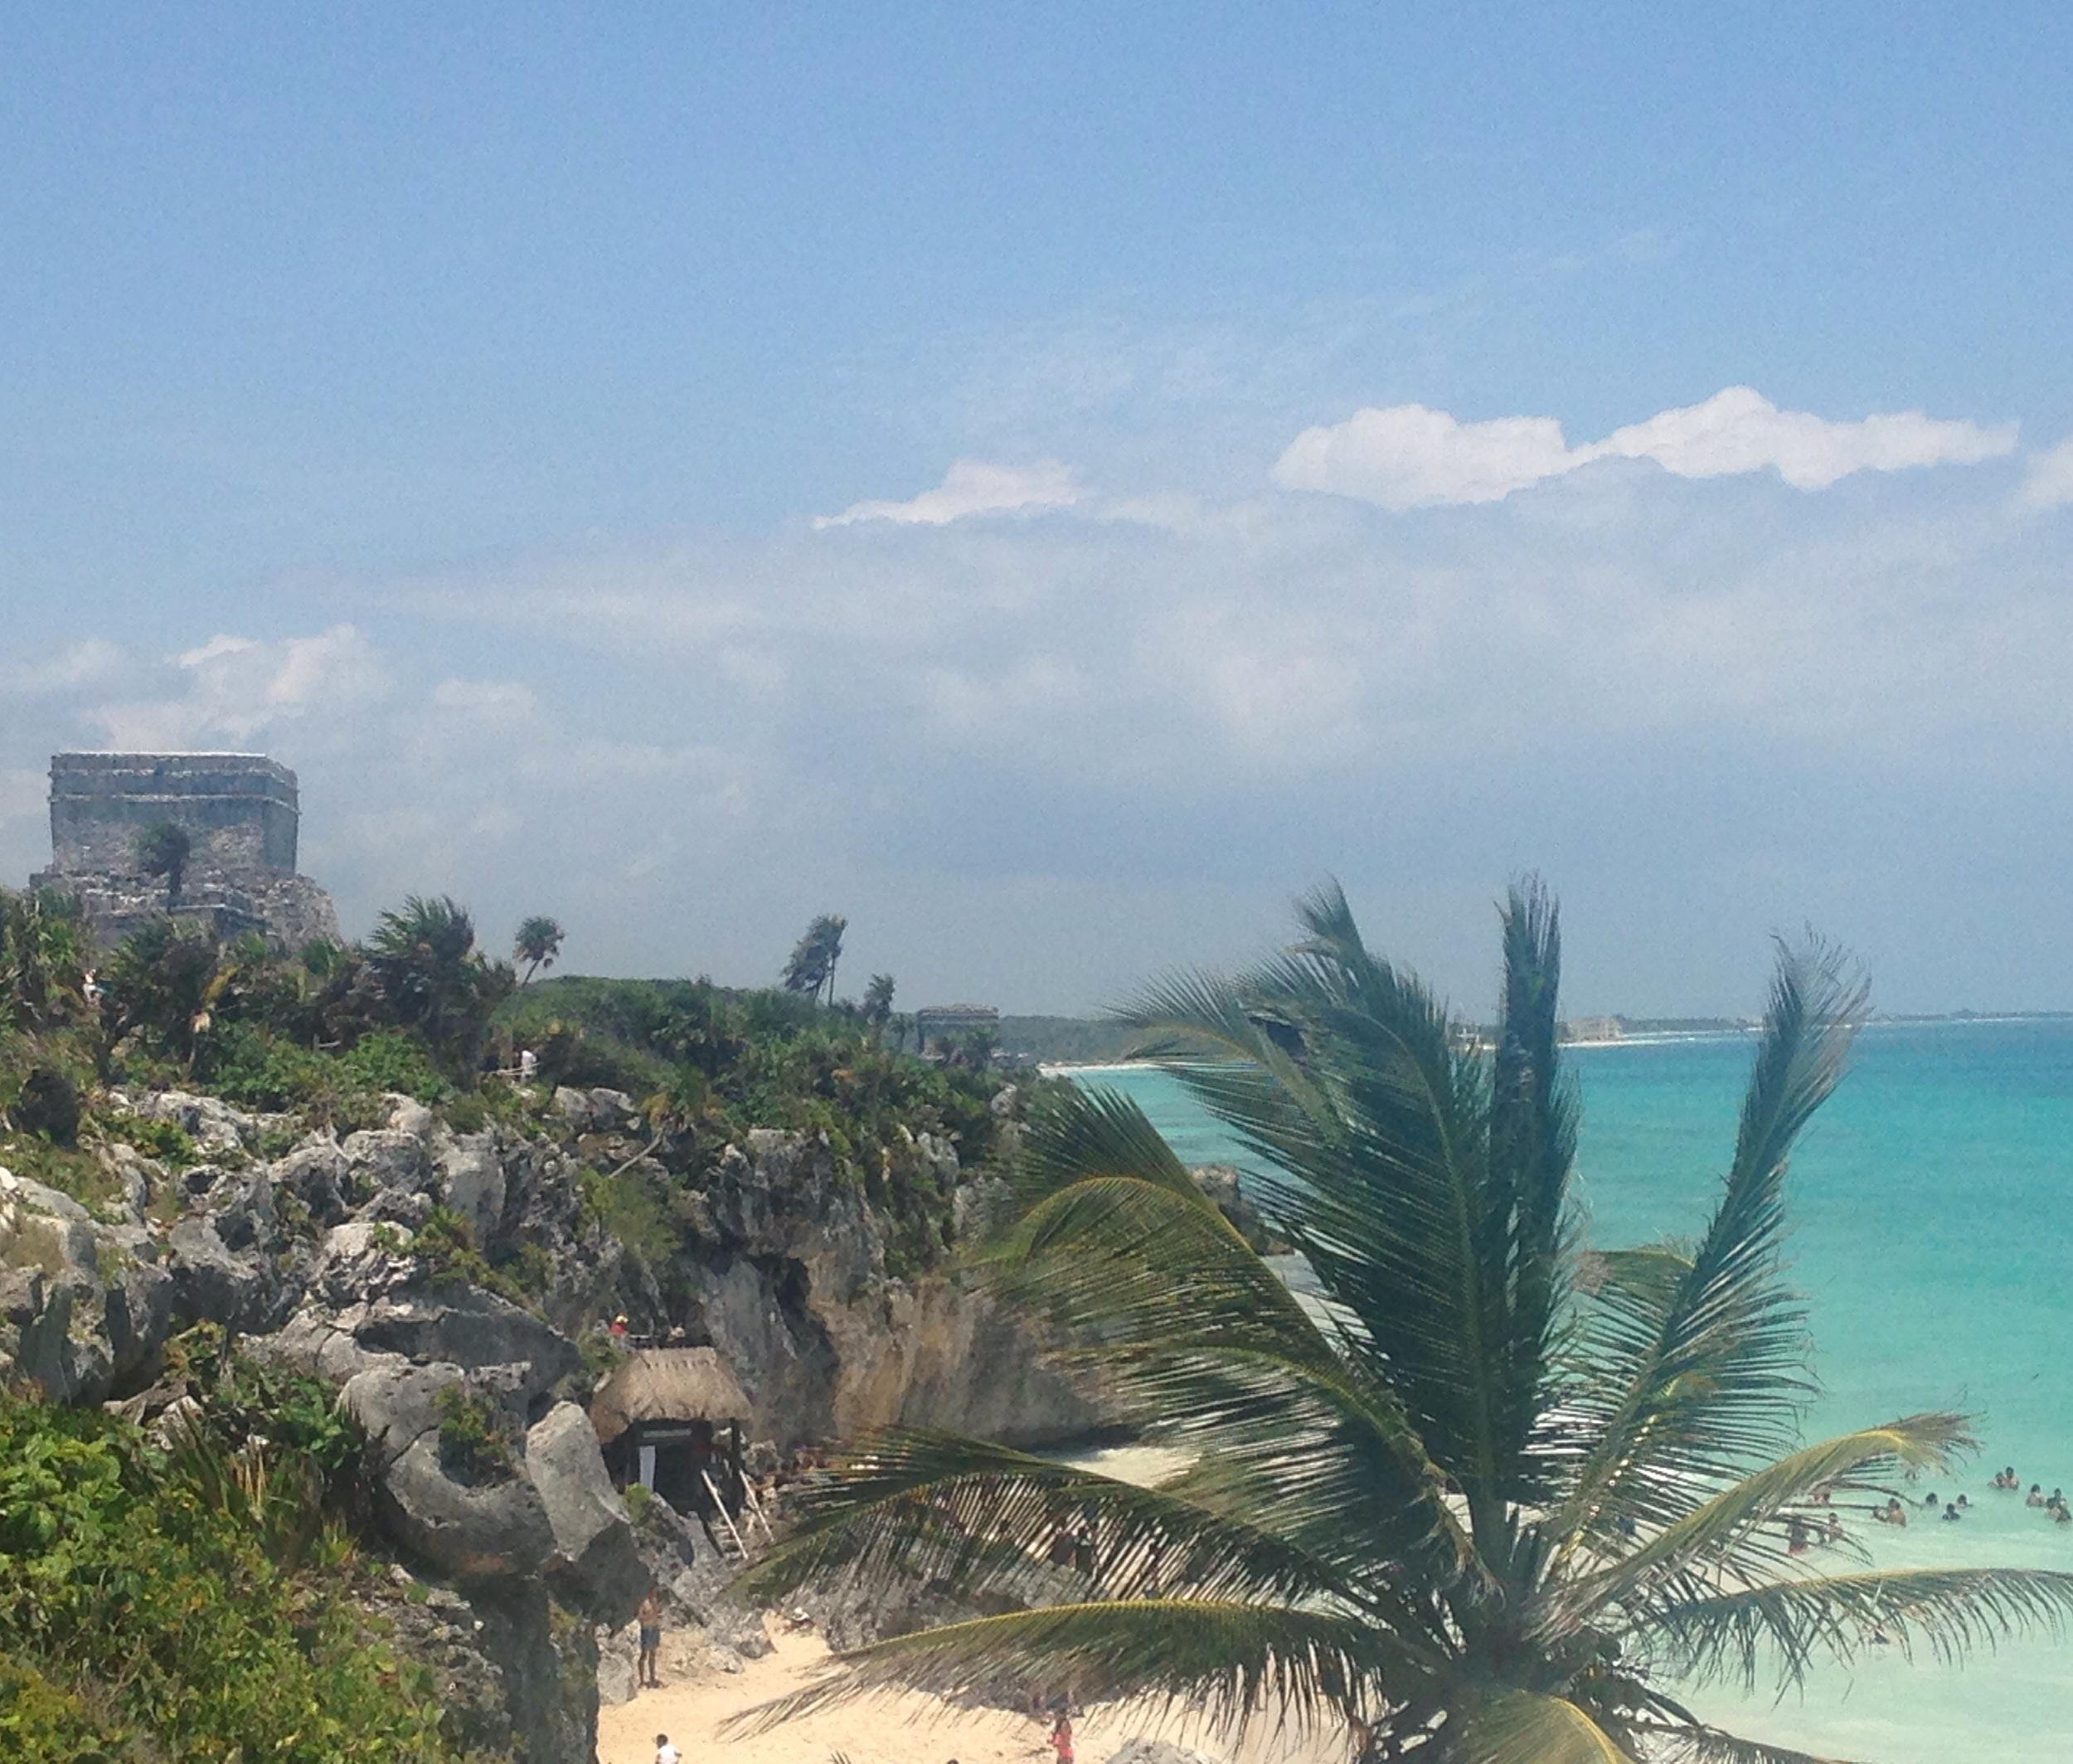 A VIEW OF THE RUINS AND THE BEACH IN TULUM